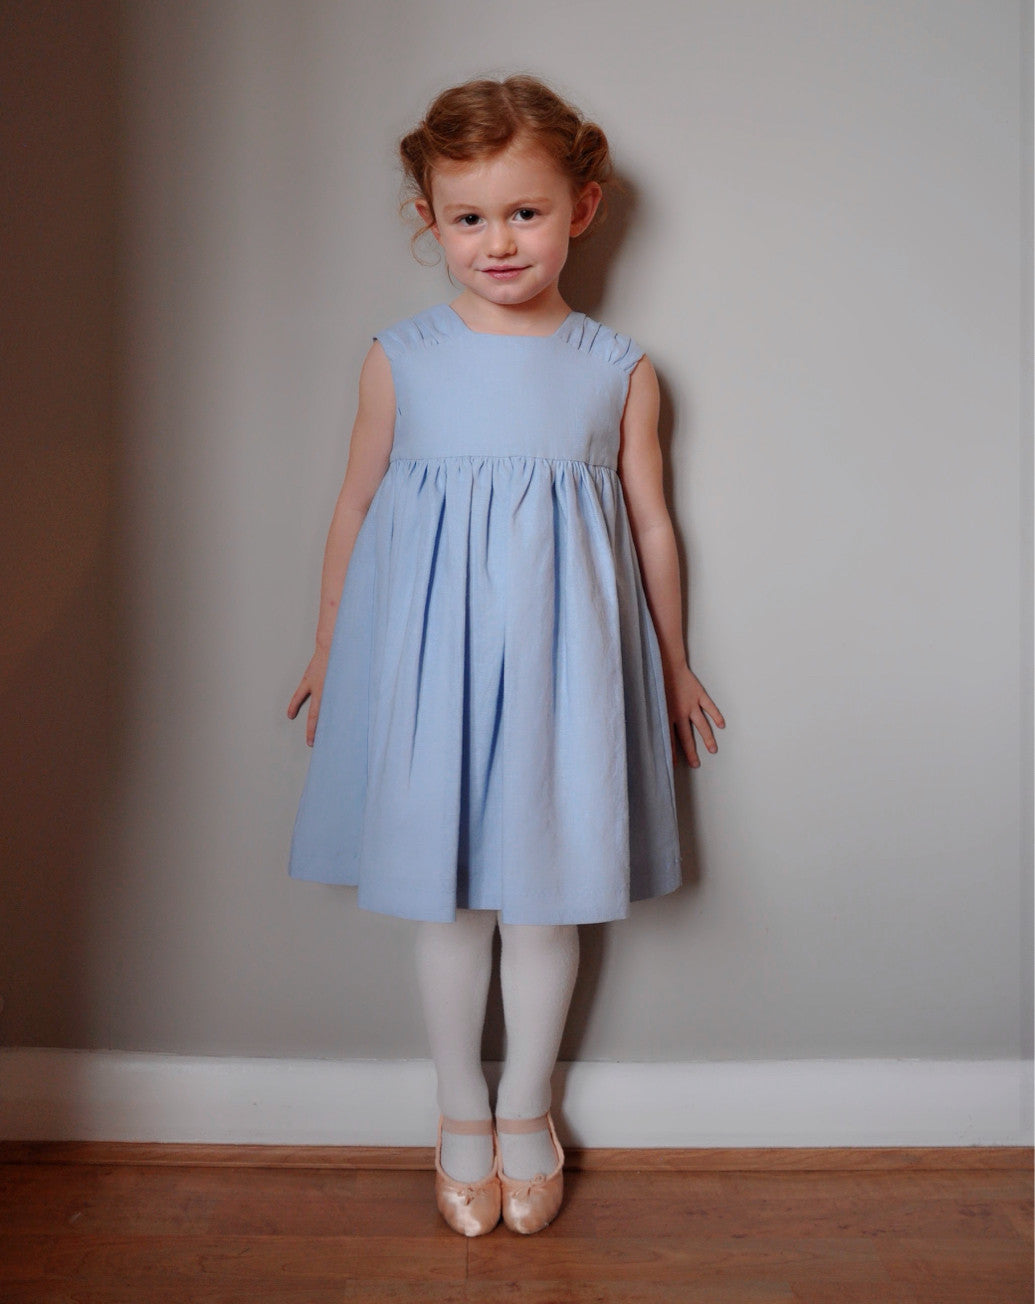 Girls dress handmade in a soft blue linen 'Pretty Wedgewood'